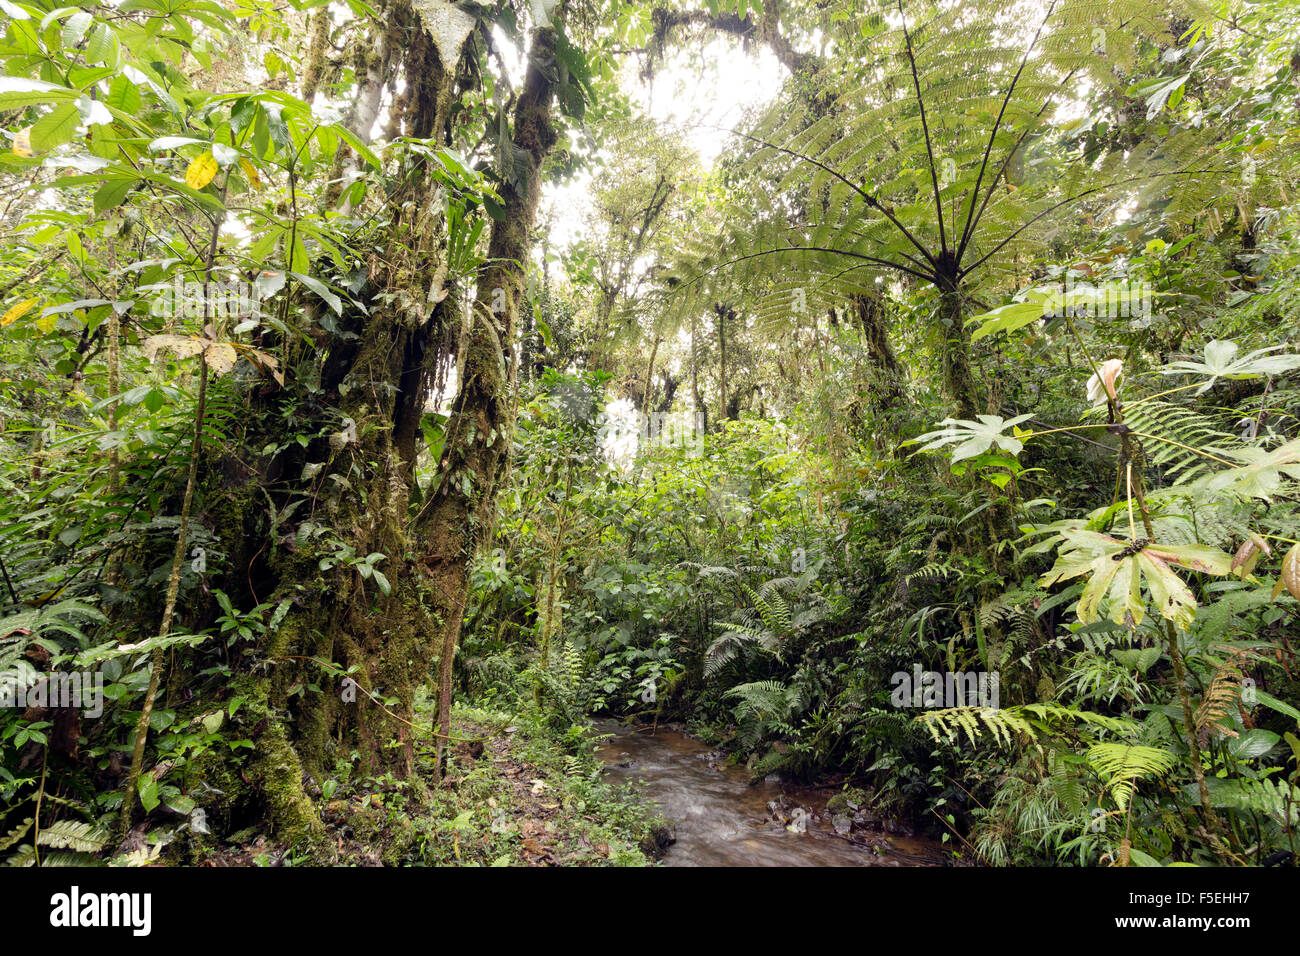 Humid cloudforest at 2,200m elevation on the Amazonian slopes of the Andes in Ecuador, Tree fern and stream. - Stock Image